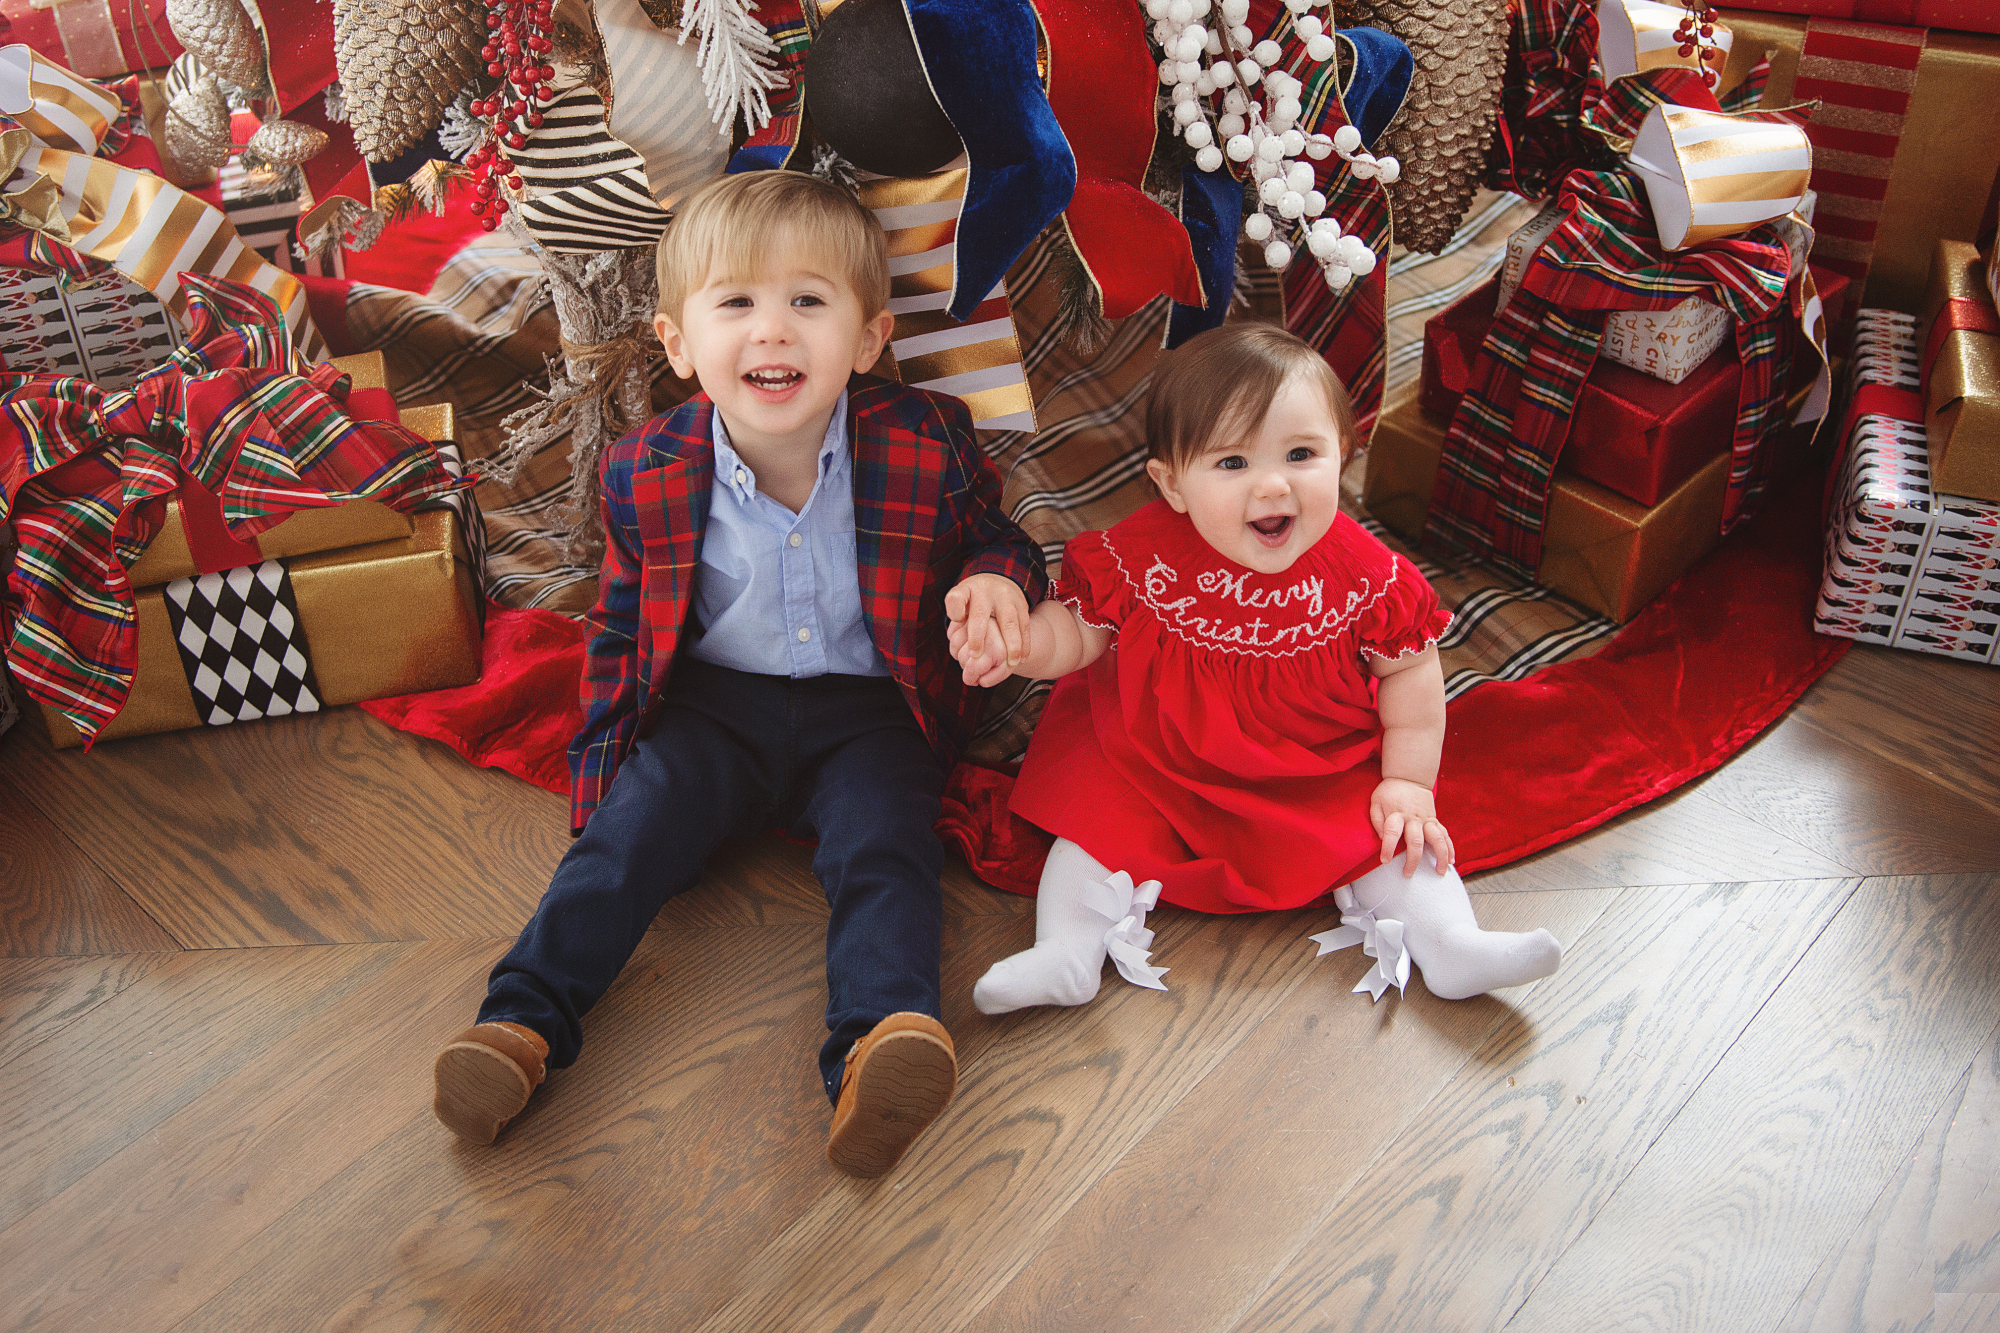 family Christmas card outfit inspiration, smocked Christmas dress baby, baby boy fashion Christmas, pinterest Christmas tree decor, shop hello holidays, Emily Gemma, the sweetest thing blog | Merry Christmas Wishes To You & Yours🎁❤️🎄 [Our Christmas Card 2019] by popular Oklahoma life and style blog, The Sweetest Thing: image a brother and sister sitting in front of their Christmas tree and wearing Smocked Auctions MERRY CHRISTMAS SMOCKED BISHOP RED CORDUROY dress, Zara BASIC SERGED SKINNY JEANS, Zara  LEATHER LOAFERS, Janie and Jack POPLIN SHIRT, Janie and Jack PLAID WOOL BLAZER.